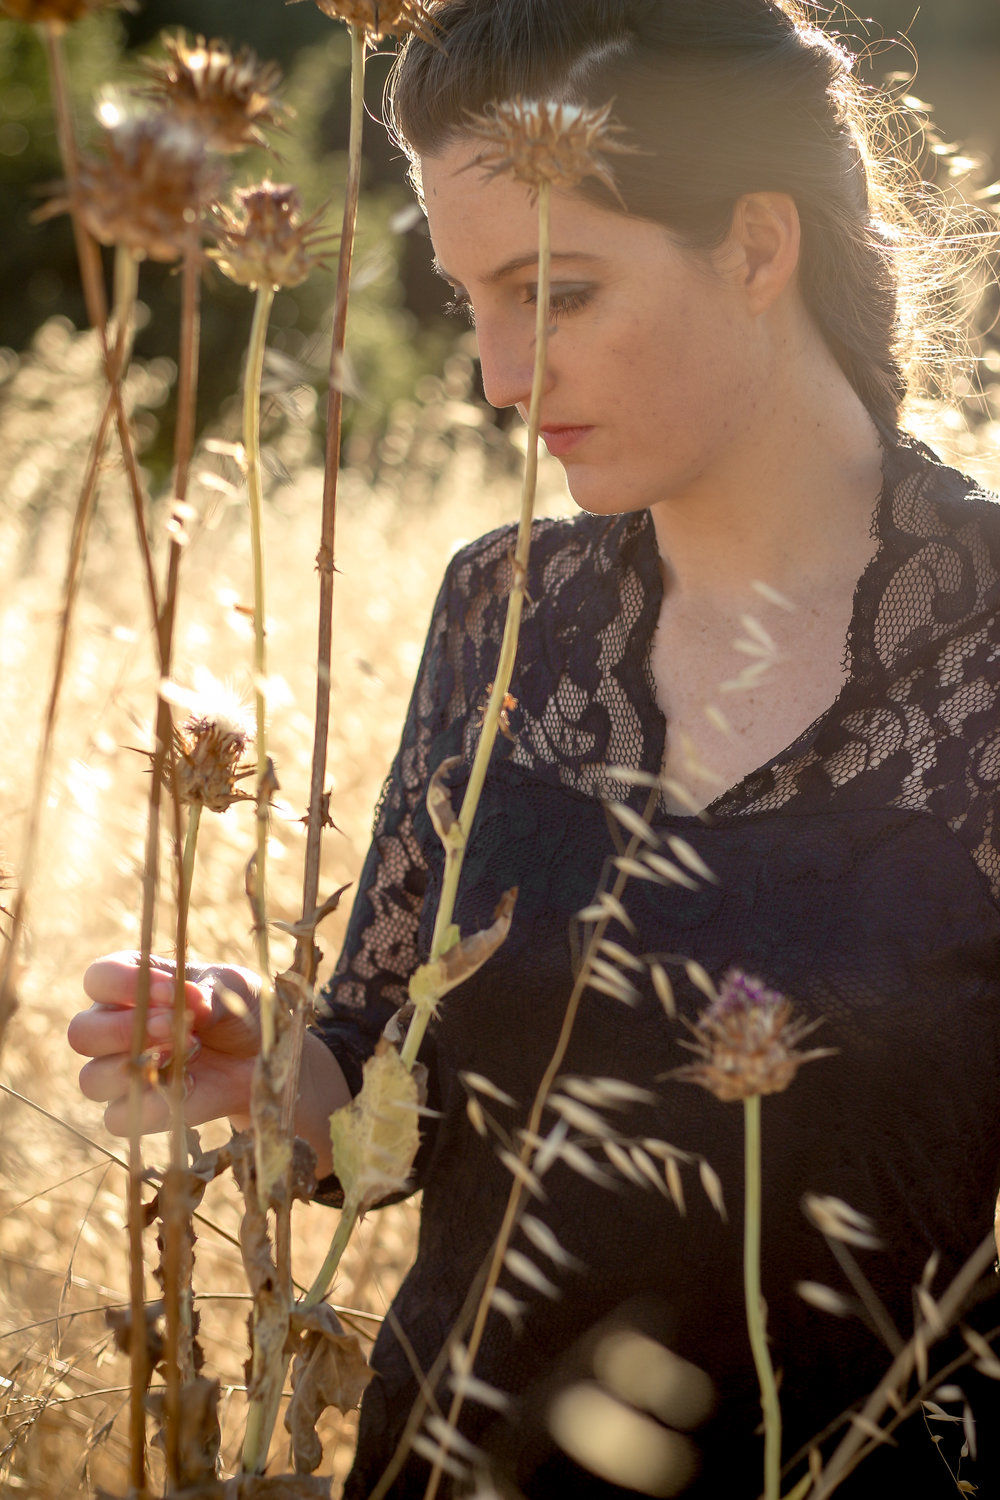 alexandra-rice-photography-quail-hollow-ranch-gothic-photoshoot-meadow-dead-field-flowers.jpg